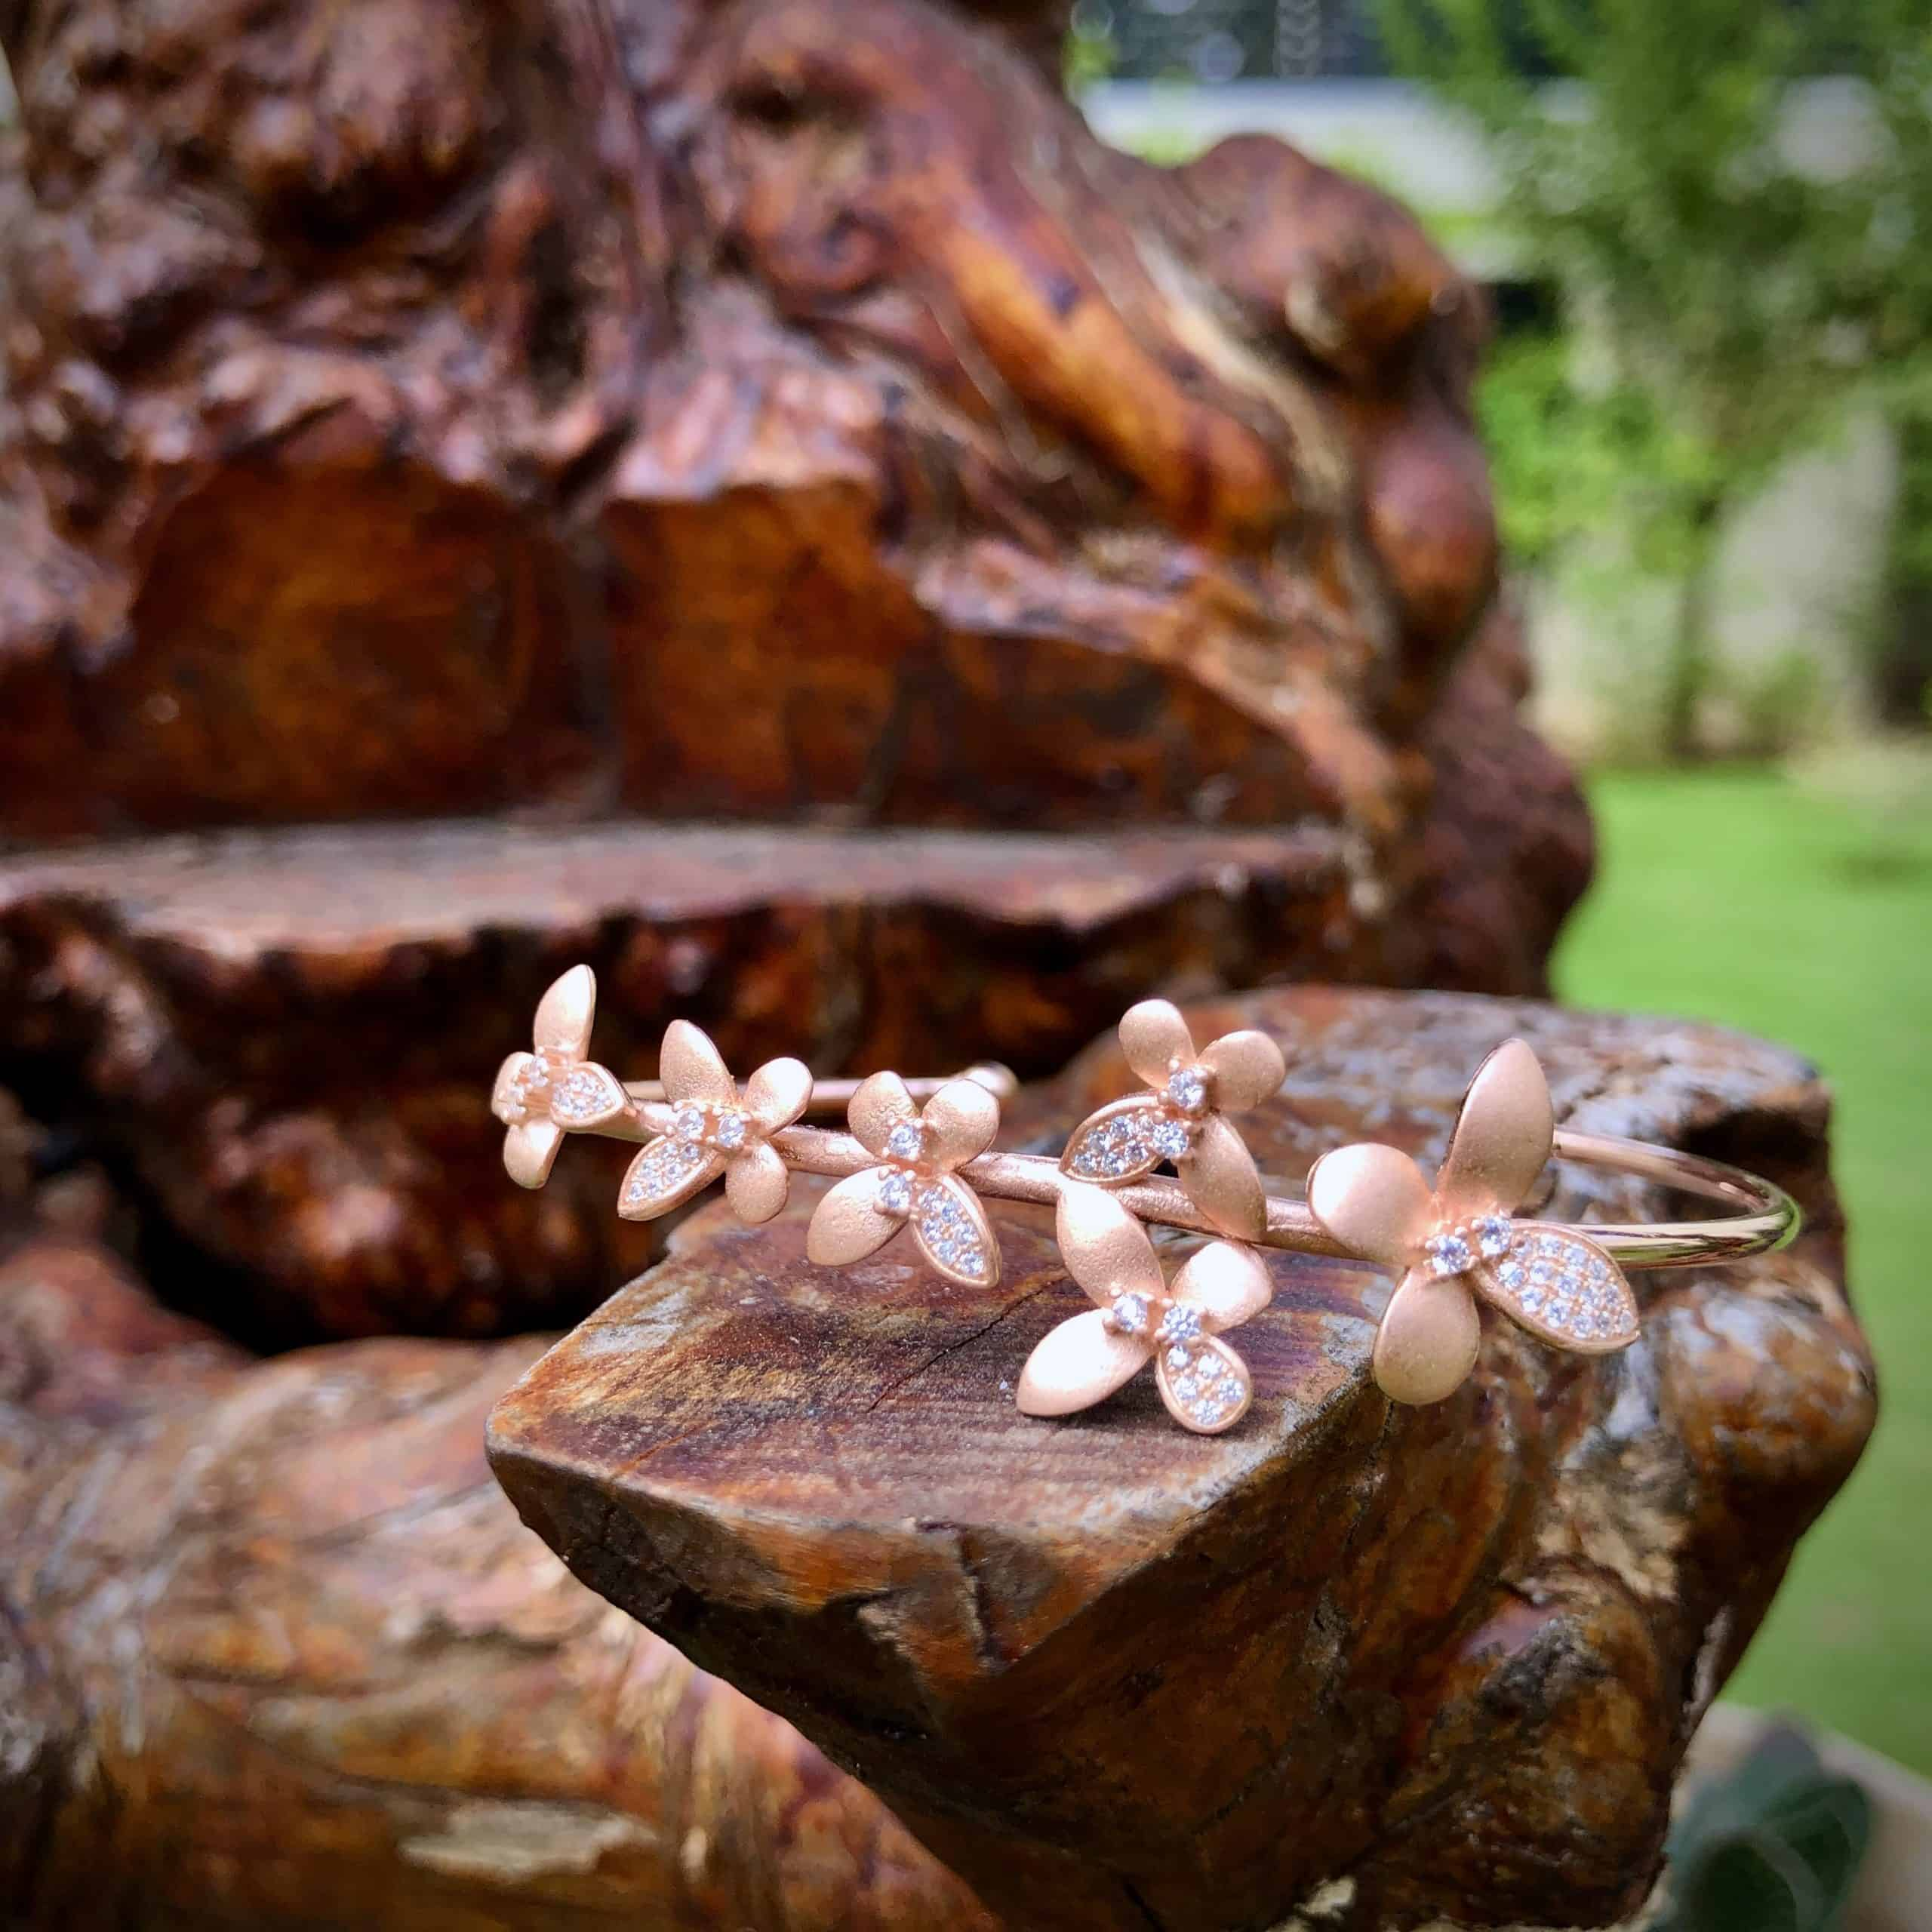 Image showing rose gold plated sterling silver bracelet with small flowers studded with American diamonds on a wooden stand